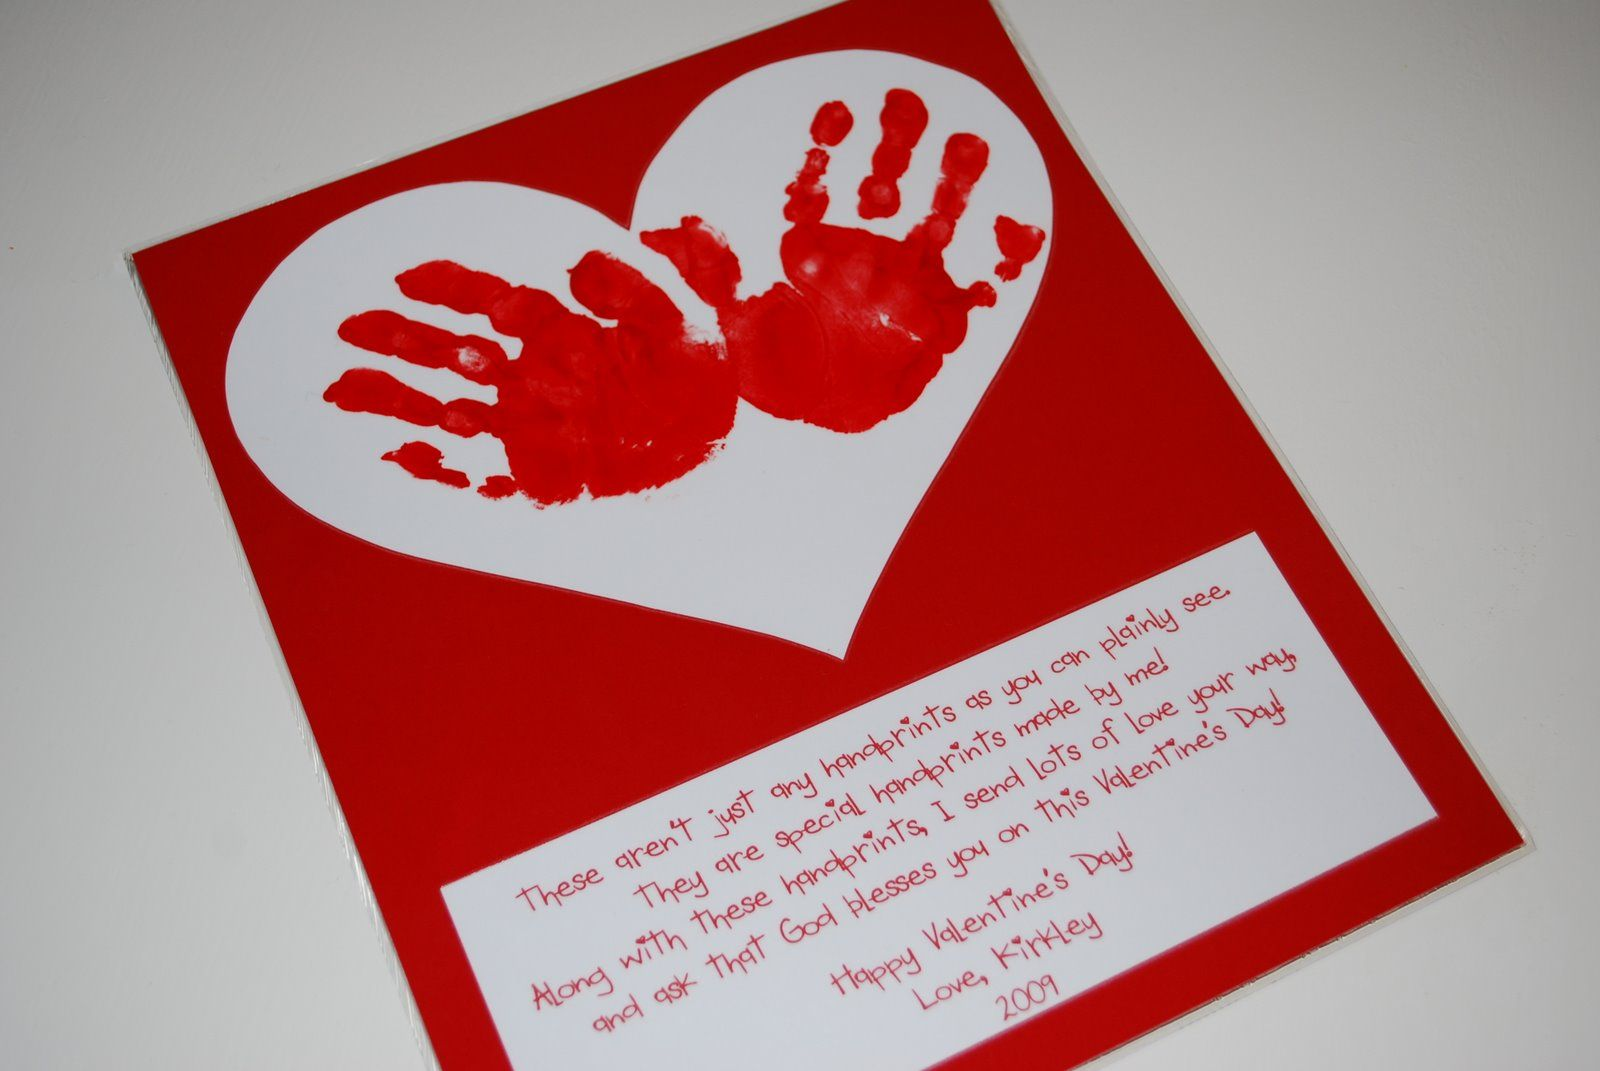 God Bless You On Valentine S Day Handprint Craft And Poem Used Djb Heart Of Dixie Font